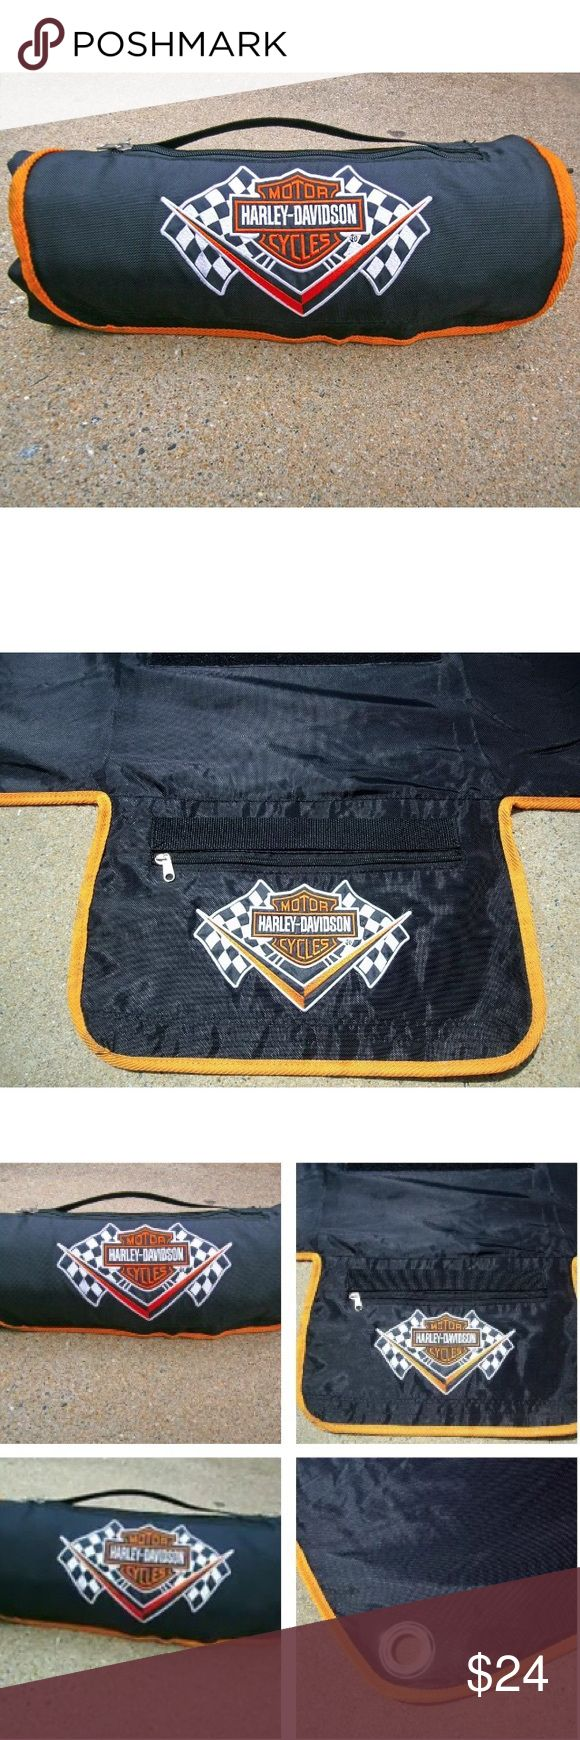 "HARLEY DAVIDSON Picnic Blanket Bike Tarp Cover HARLEY DAVIDSON Roll Up Picnic Blanket Motorcycle Tarp Cover with Zipper Pocket  Authentic Harley Davidson Motorcycle Day Cover, Work Tarp or Picnic Blanket.  Soft fleece on one side and nylon on the other. Fold out bag with a zipper on top.  Black with orange trim & Harley Davidson logo.  Has grommets for tie-downs.   Dimensions: 54"" X 56""   Condition: Pre­-owned, EXCELLENT gently used condition. Free of stains, scuffs and damages. Very clean…"